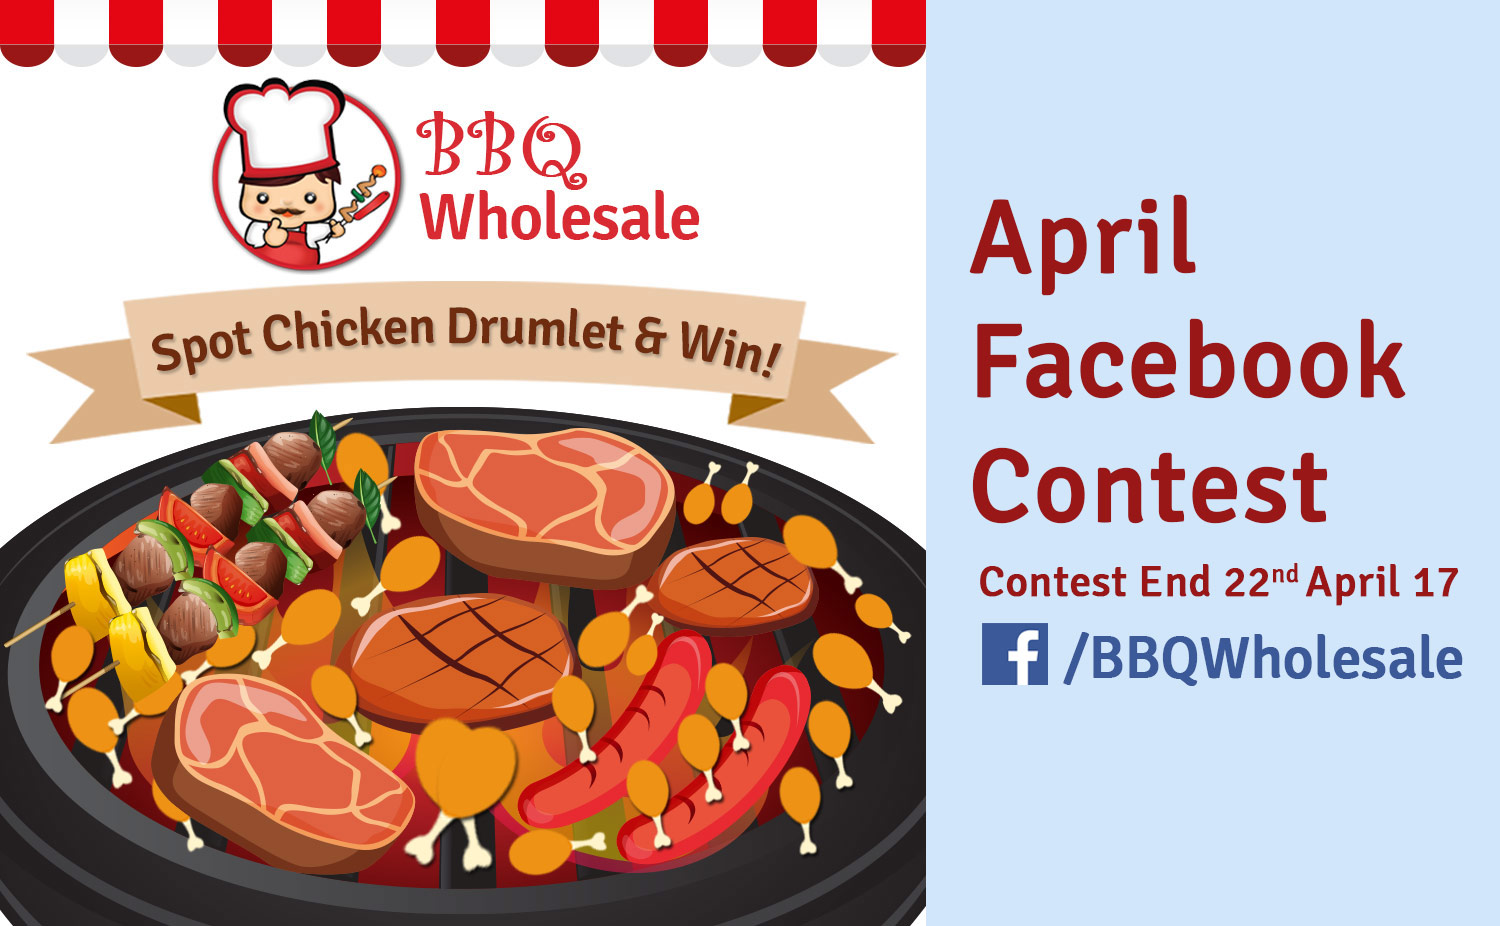 BBQ-Wholesale-BBQ-Facebook-April-Contest-Spot-Chicken-Wing-Win-FREE-Chicken-Satay